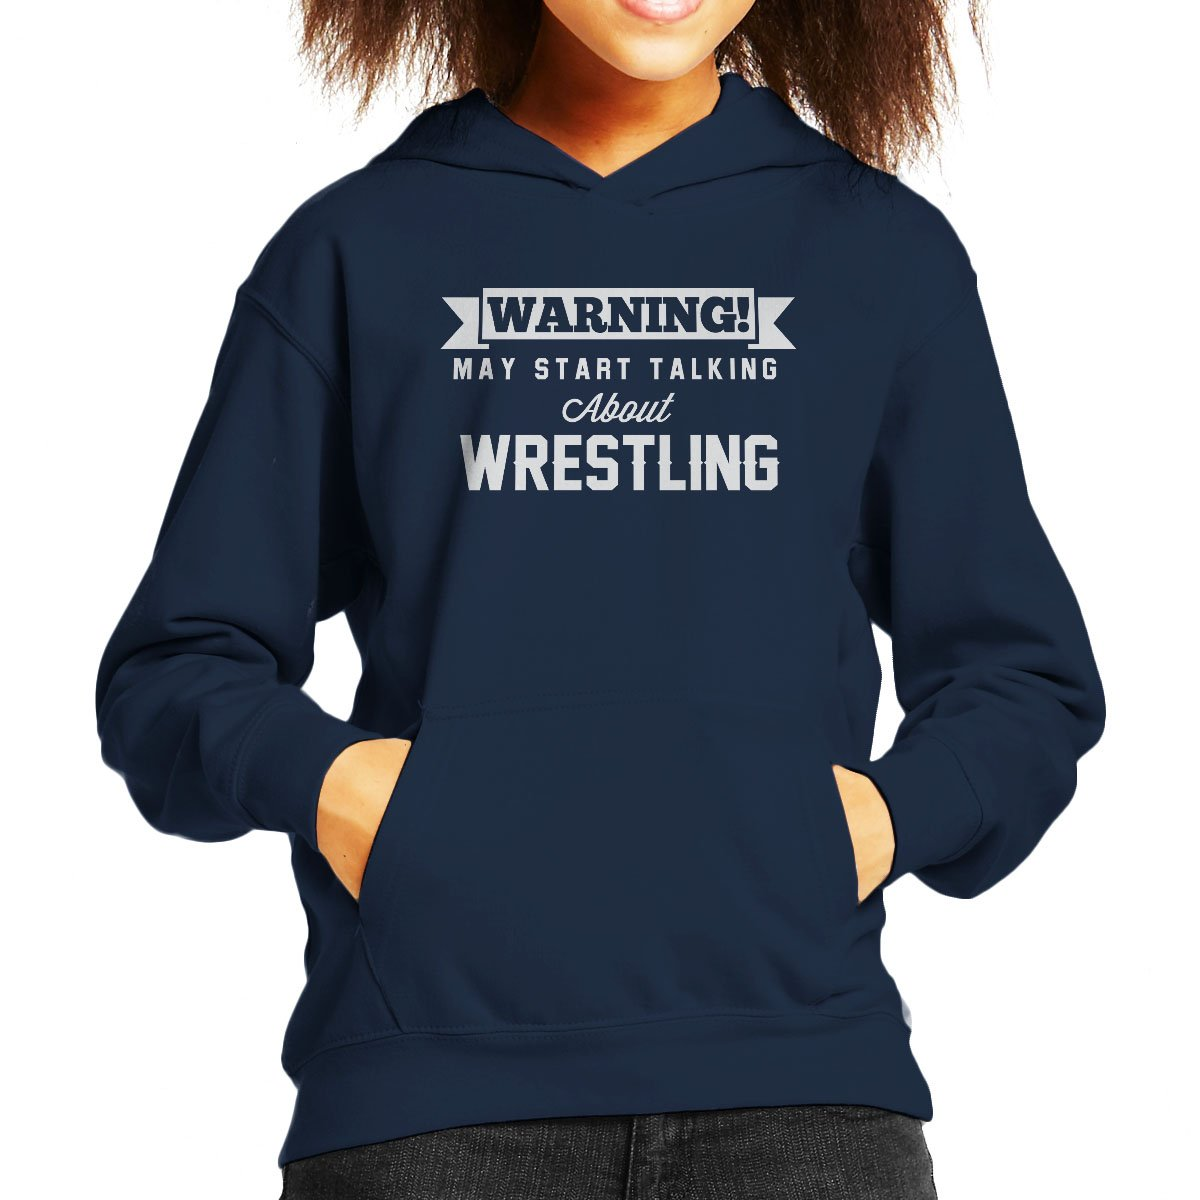 Warning May Start Talking About Wrestling Kid's Hooded Sweatshirt